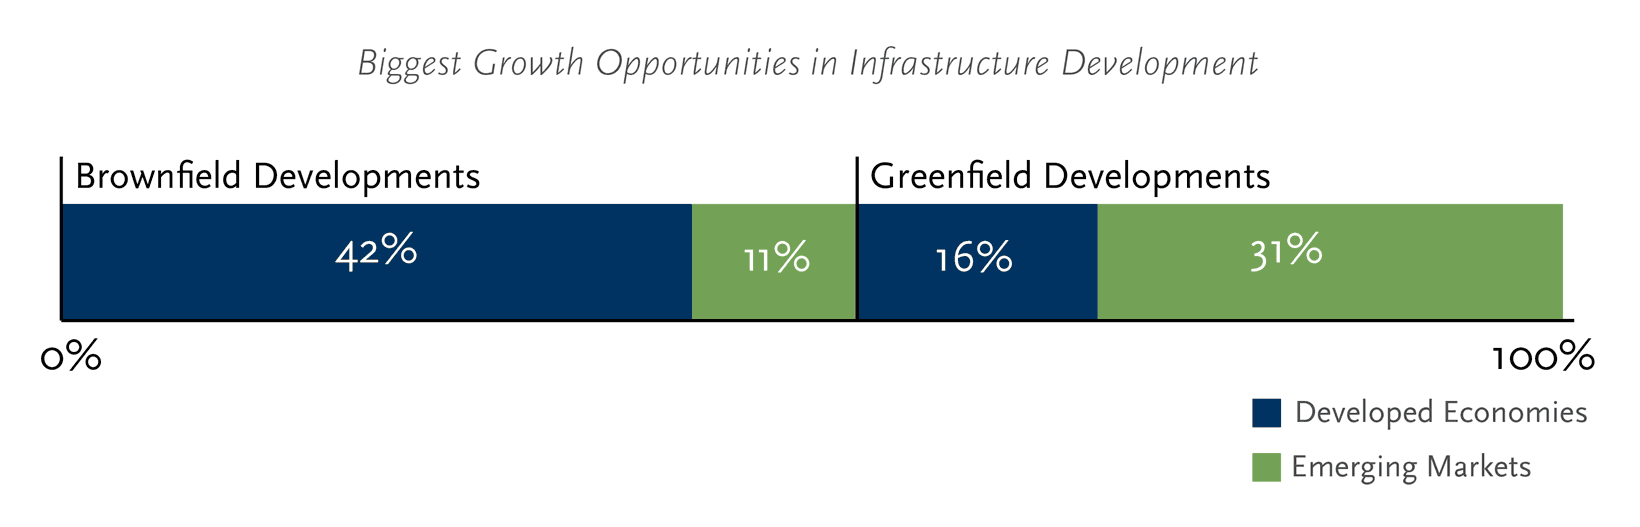 Biggest Growth Opportunities in Infrastructure Development